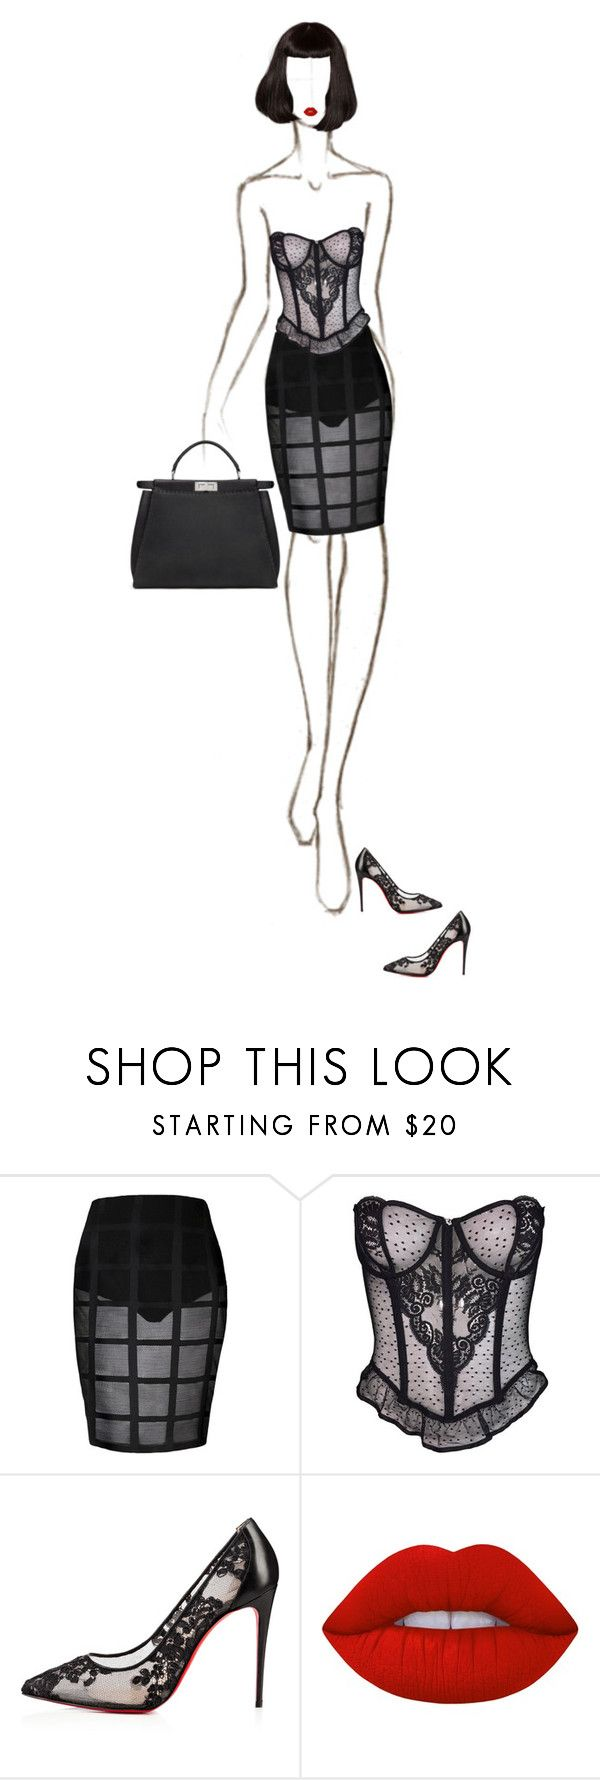 """Government Hooker"" by luxuryfashion5 ❤ liked on Polyvore featuring Christian Dior, Christian Louboutin and Lime Crime"